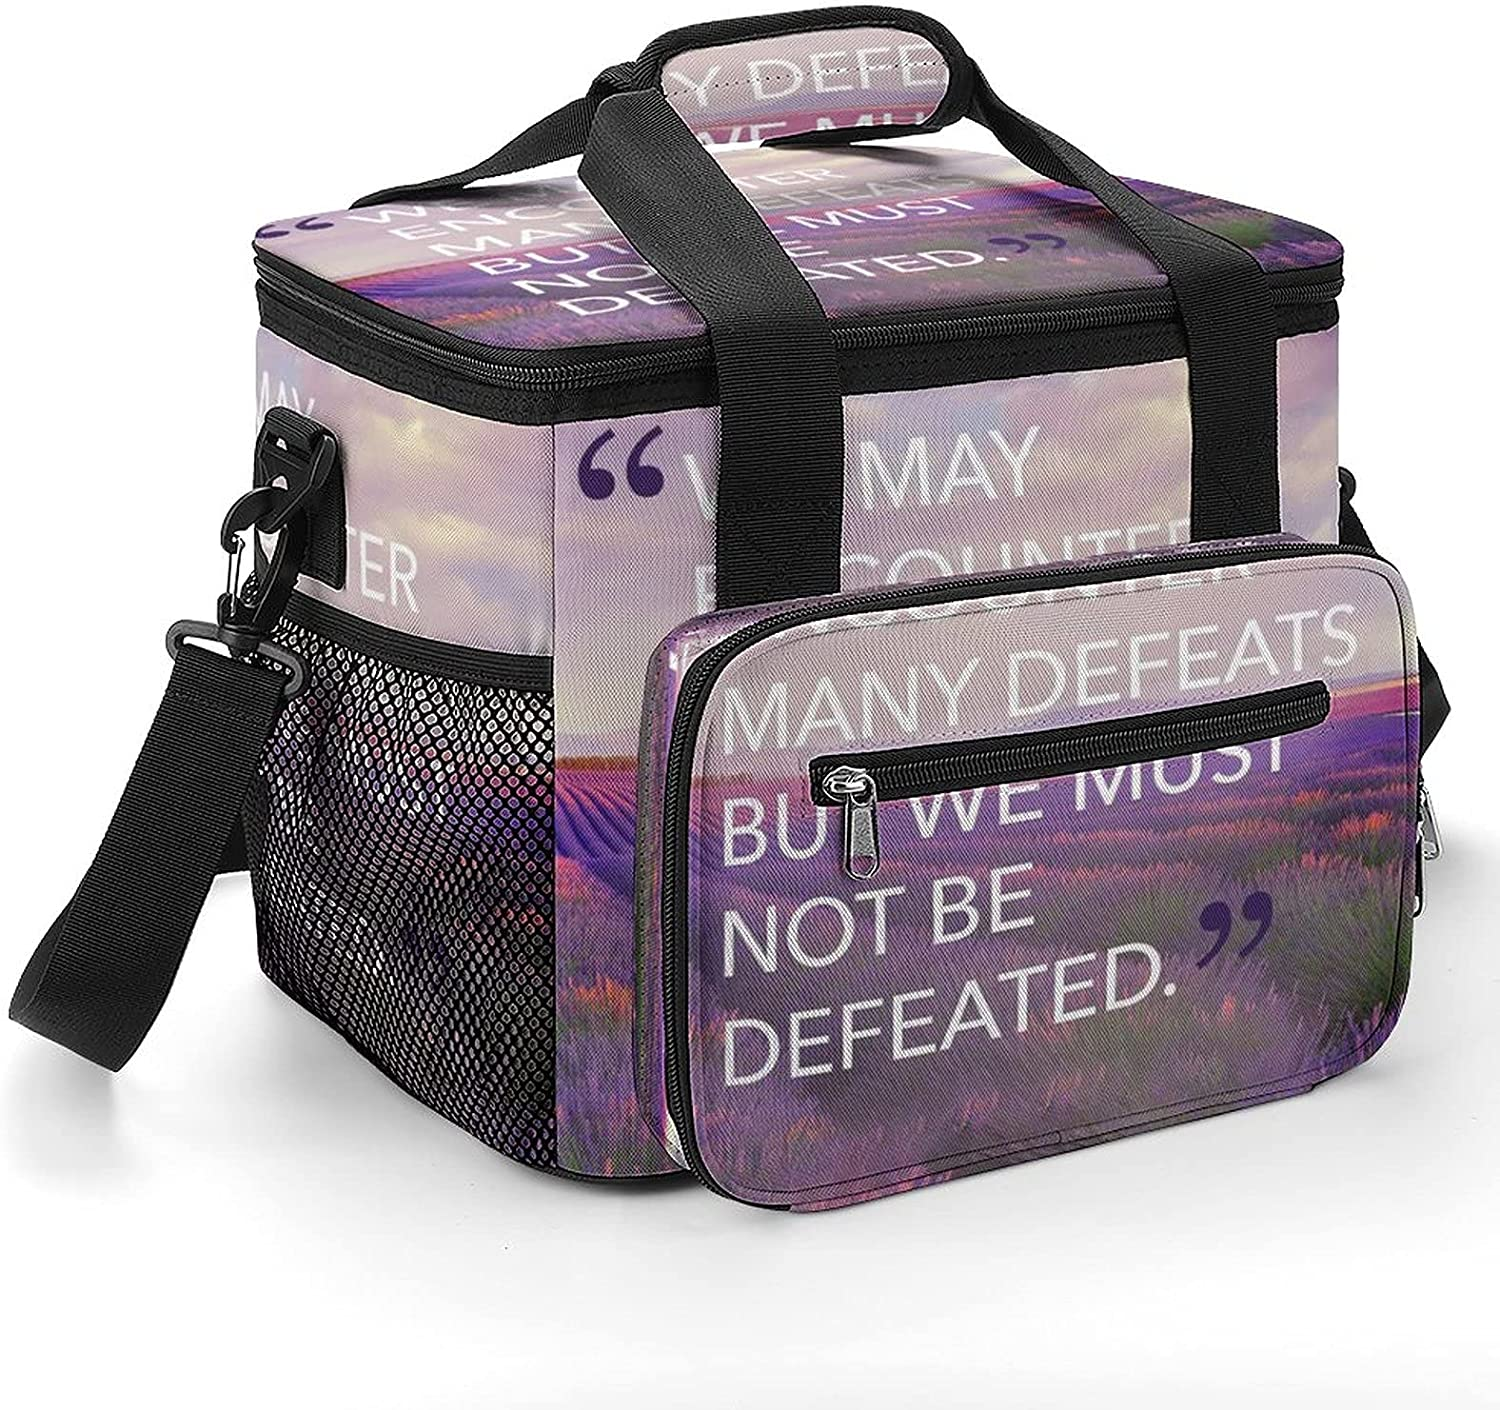 We Must Not Be Defeated Cooler Selling and selling Bag Insulated Shoulder Strap with 35% OFF